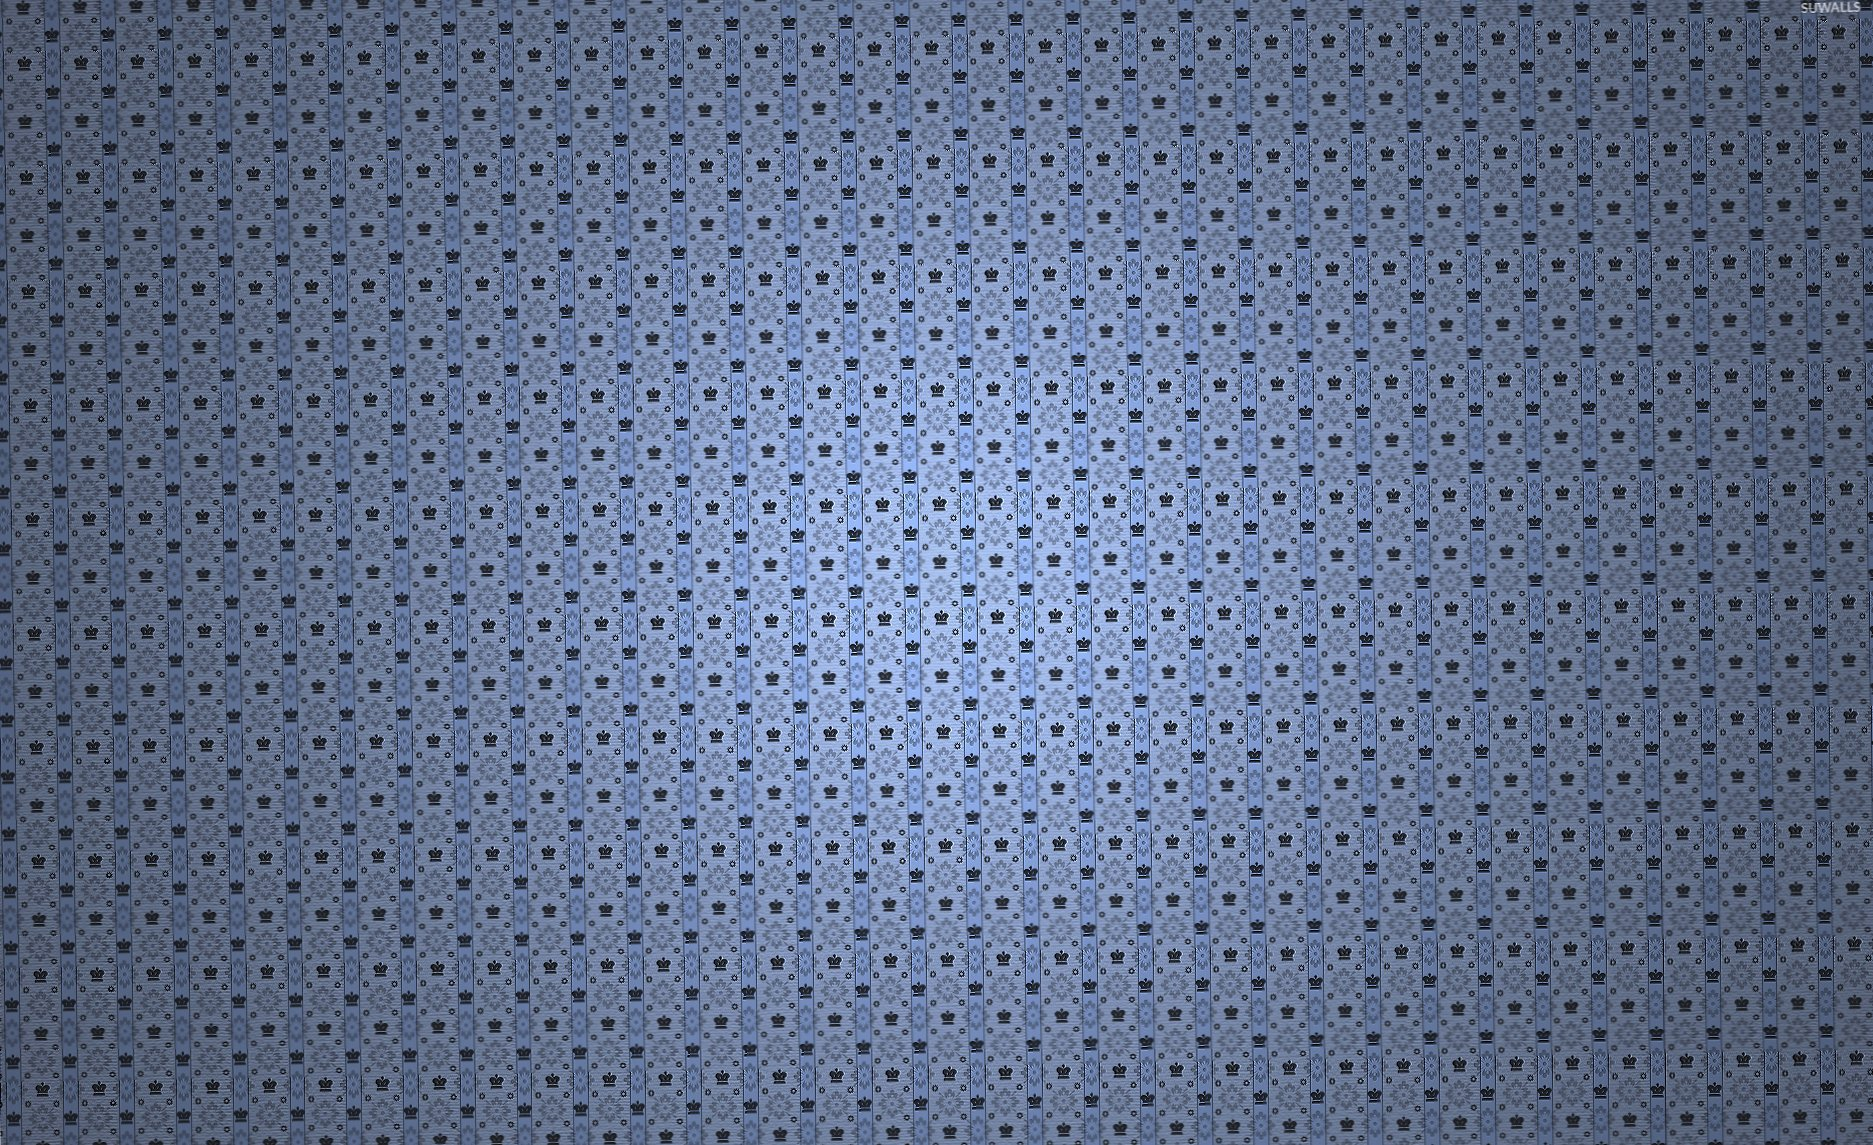 Crown pattern wallpapers HD quality